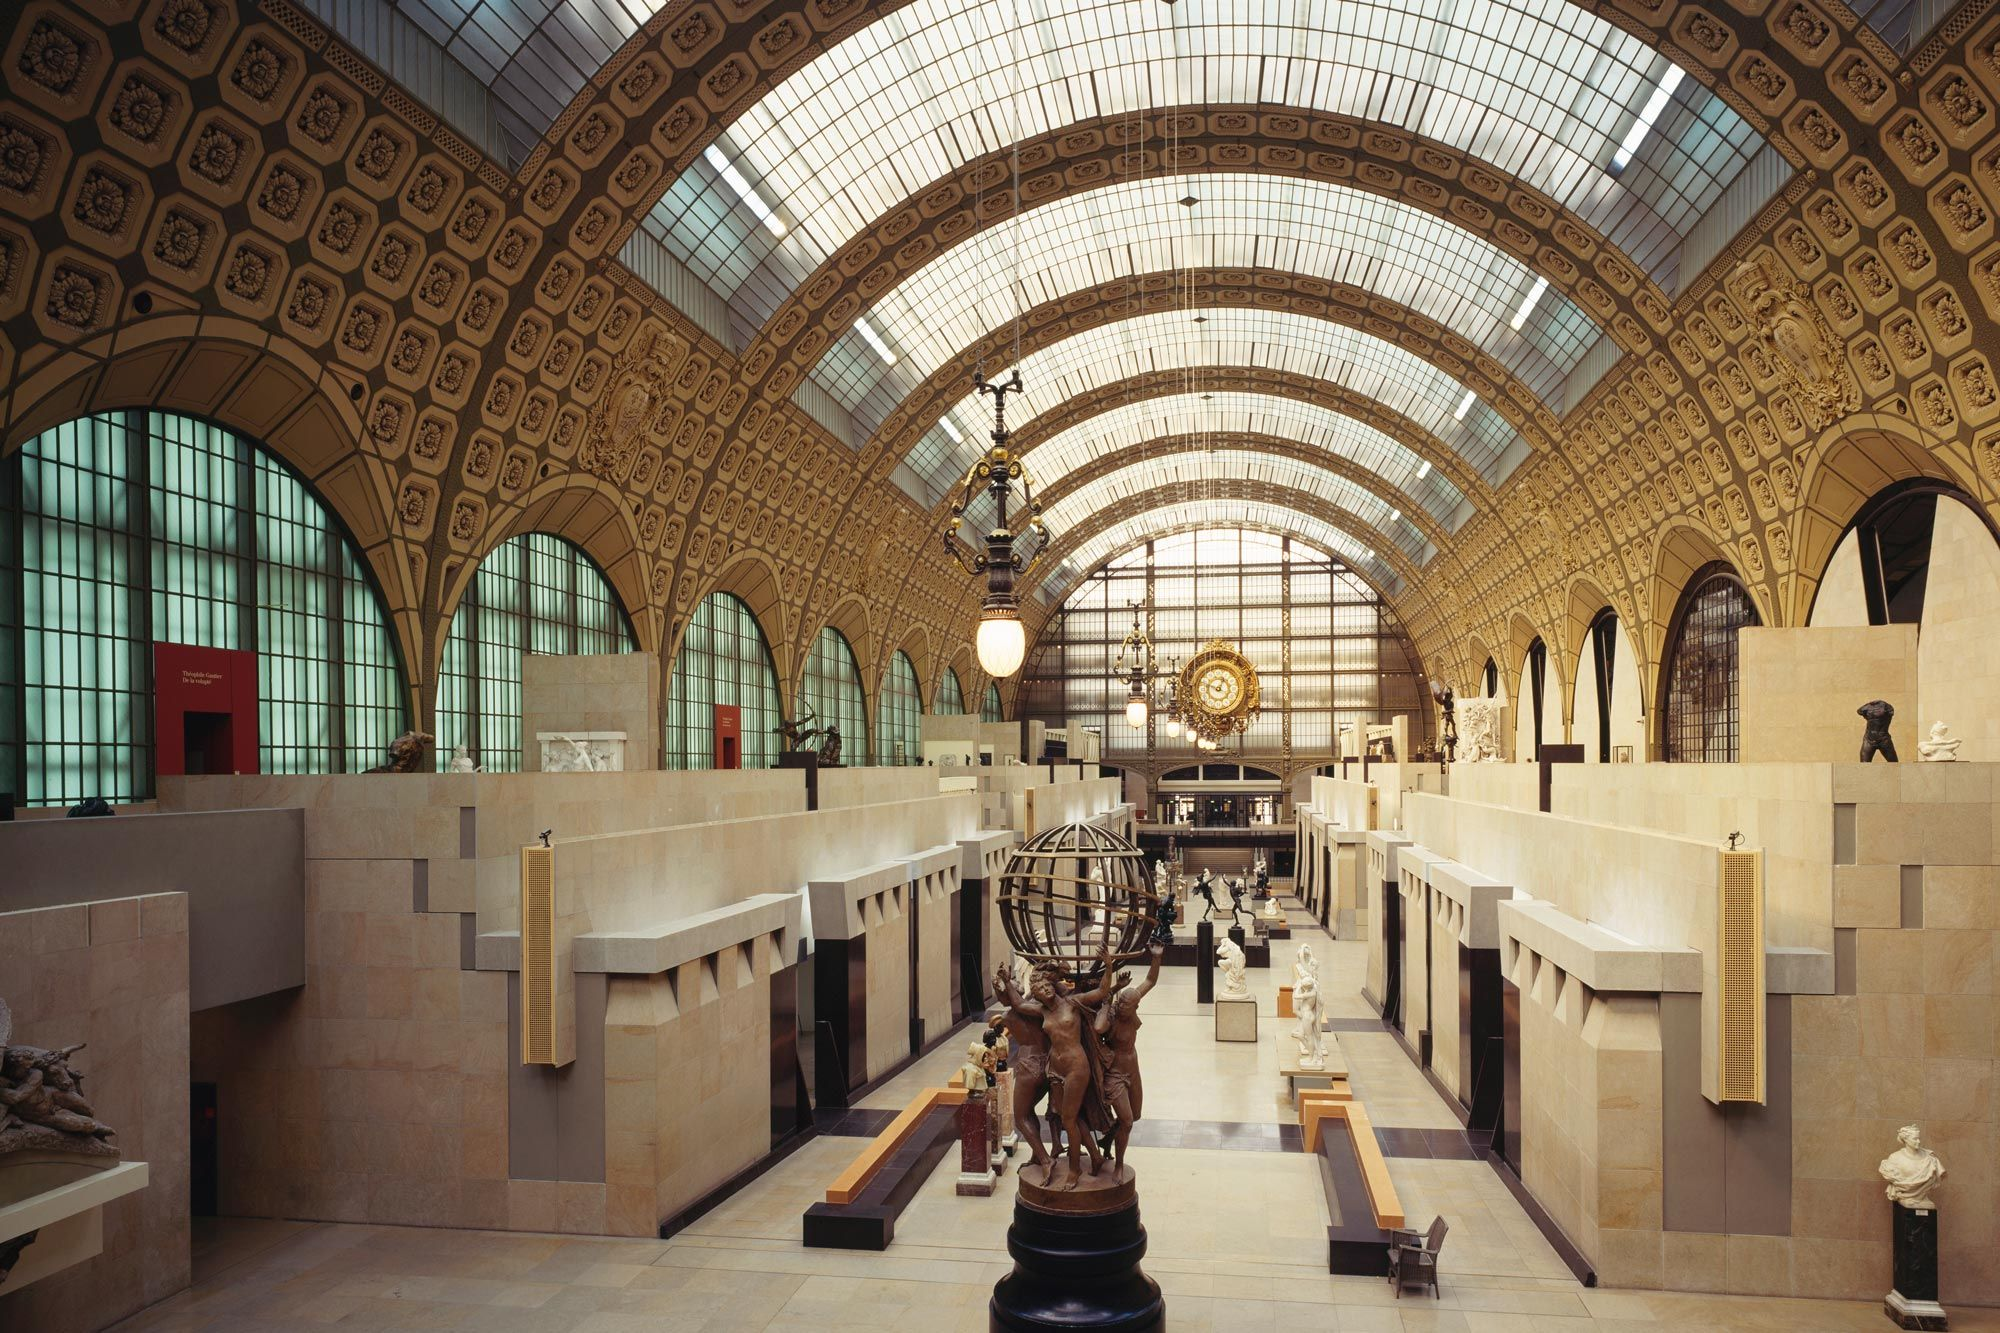 Stuck At Home These 12 Famous Museums Offer Virtual Tours You Can Take On Your Couch In 2020 Virtual Tour Pergamon Museum Museum